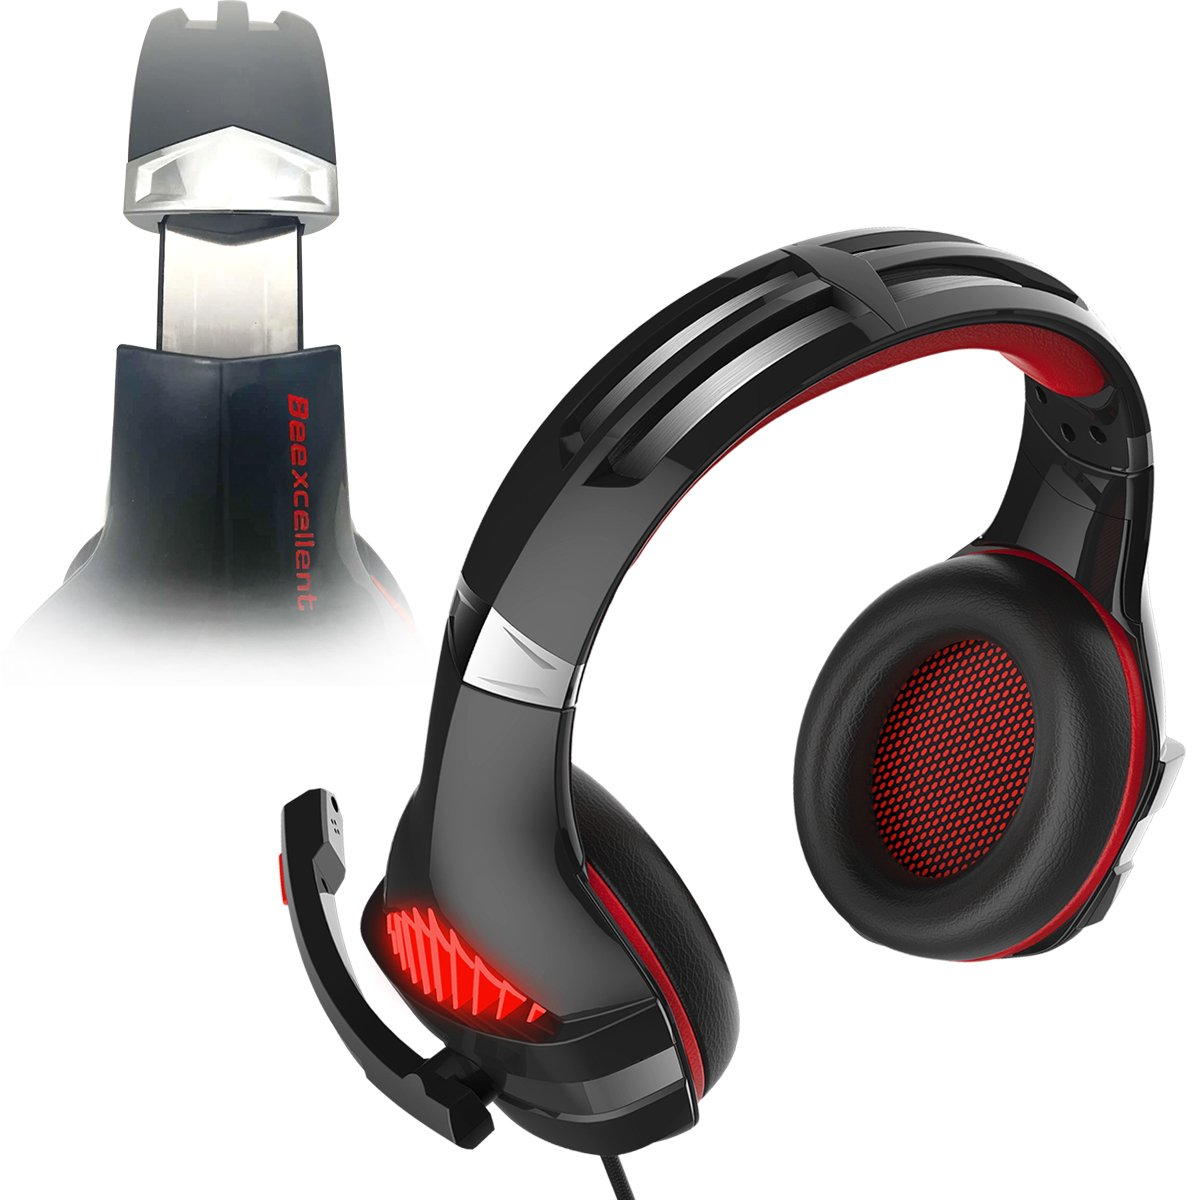 Gaming Headset, Beexcellent Gaming headphone with Microphone for PS4/Xbox One(Adapter Need)/Nintendo Switch(Audio)/PC/Controller/Cellphone-Easy Volume Control with LED Lighting 3.5MM Jack(GM-5 Red) by Beexcellent (Image #4)